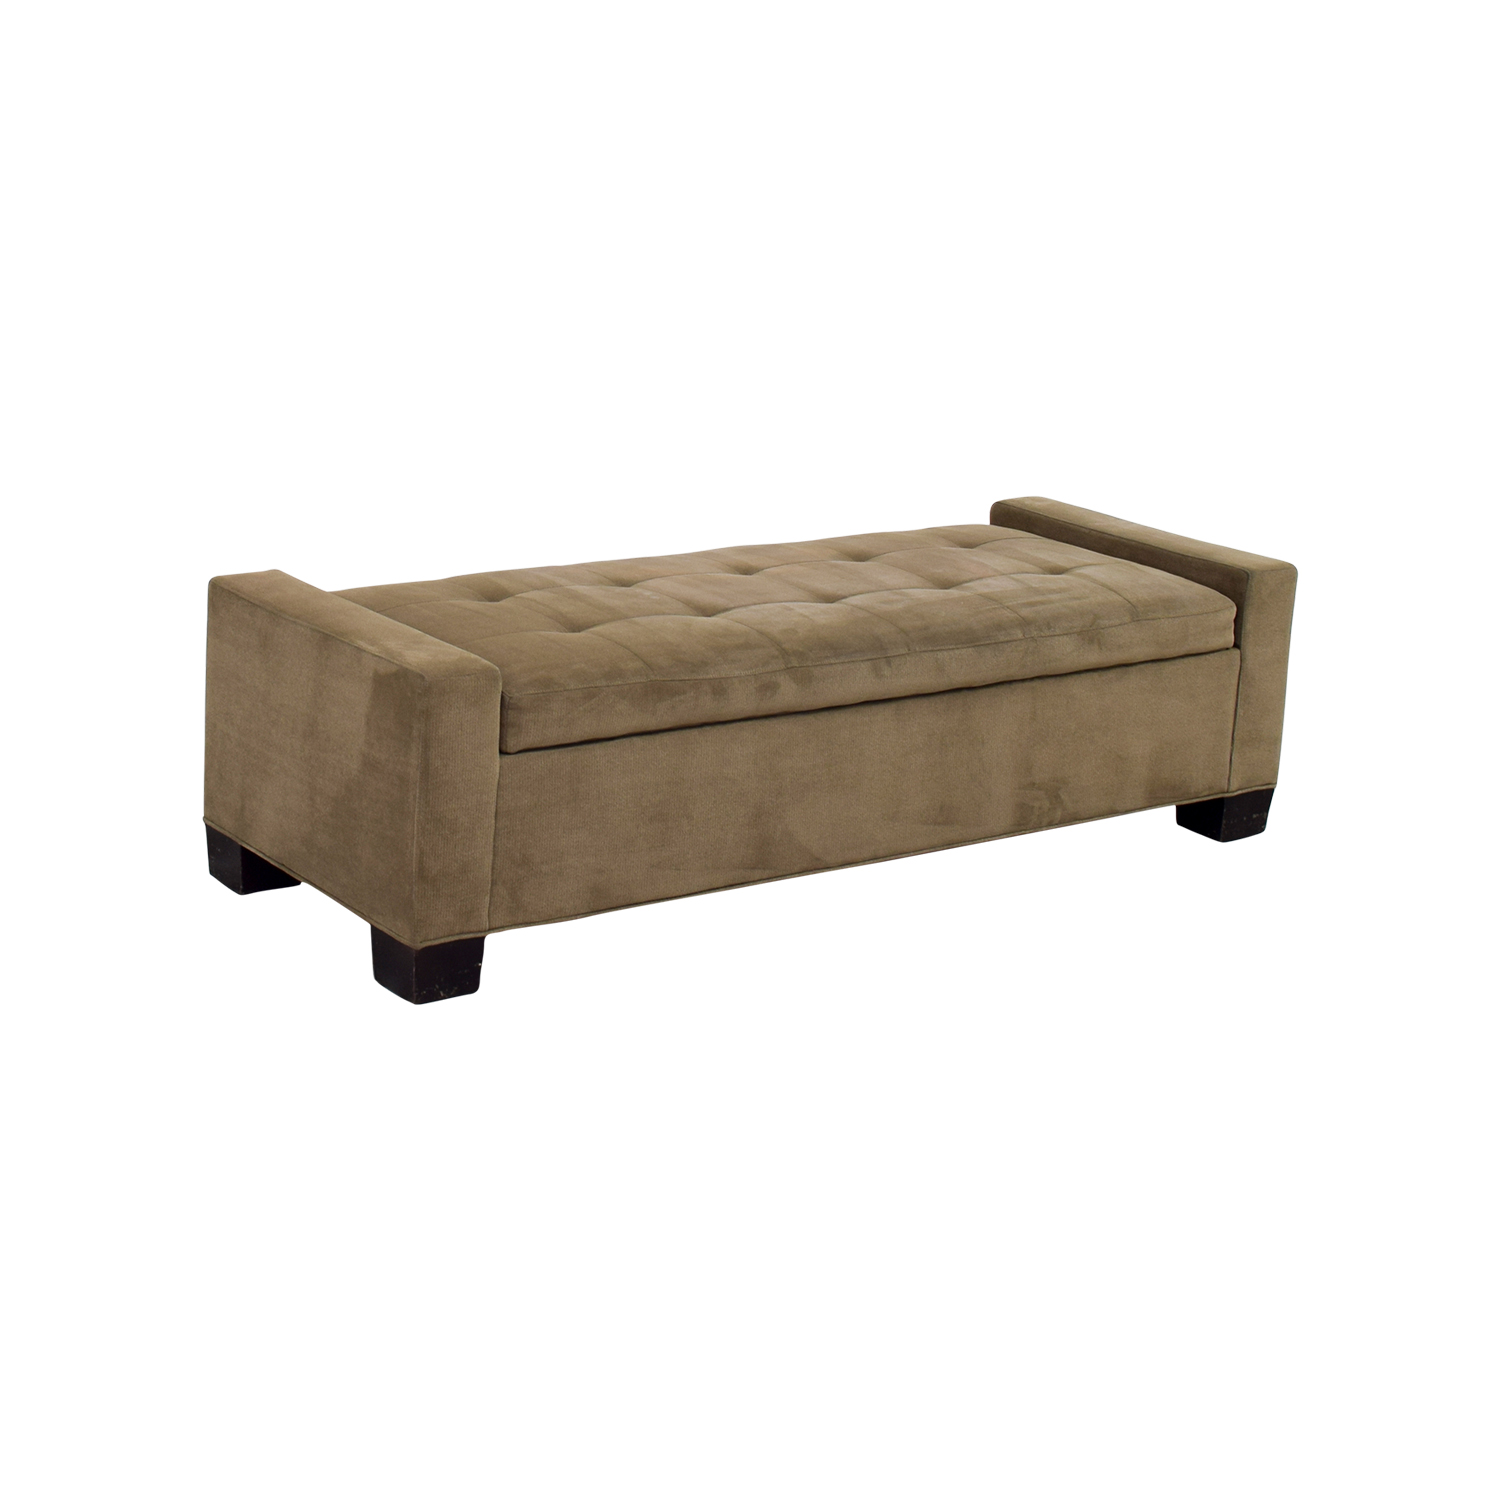 Incroyable ... Crate U0026 Barrel Brown Tufted Daybed Or Storage Bench ...